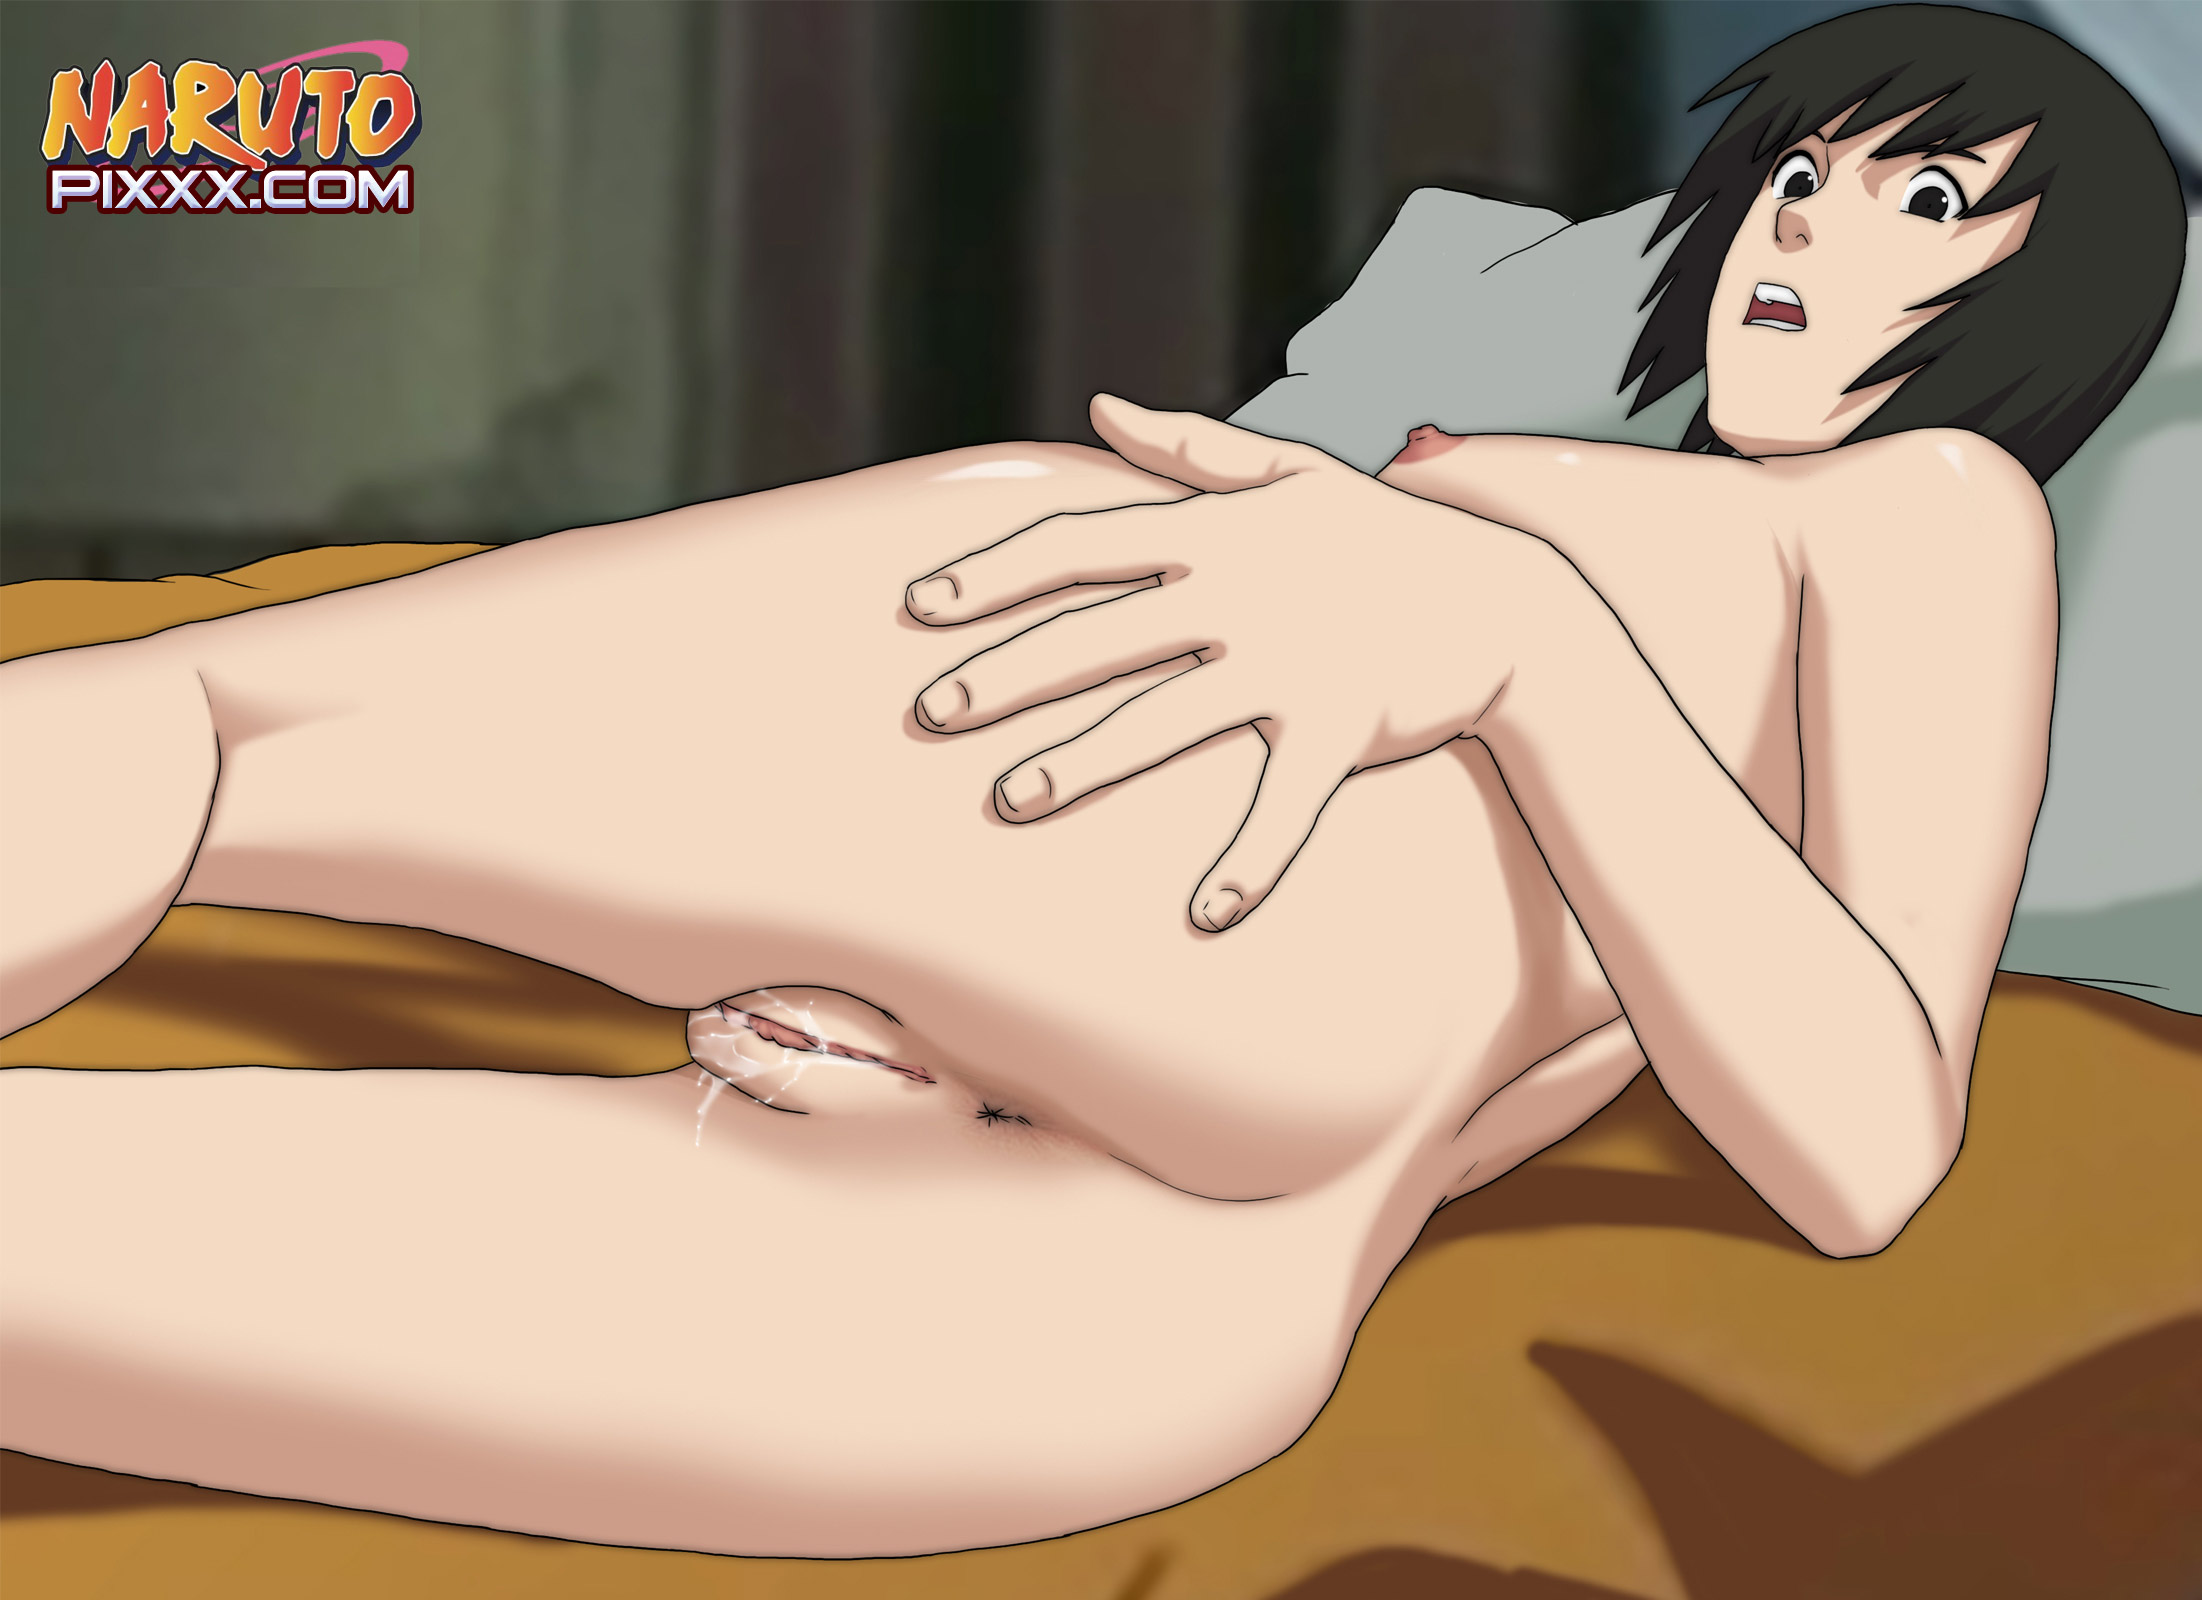 Naruto having naked sex with shizune this excellent